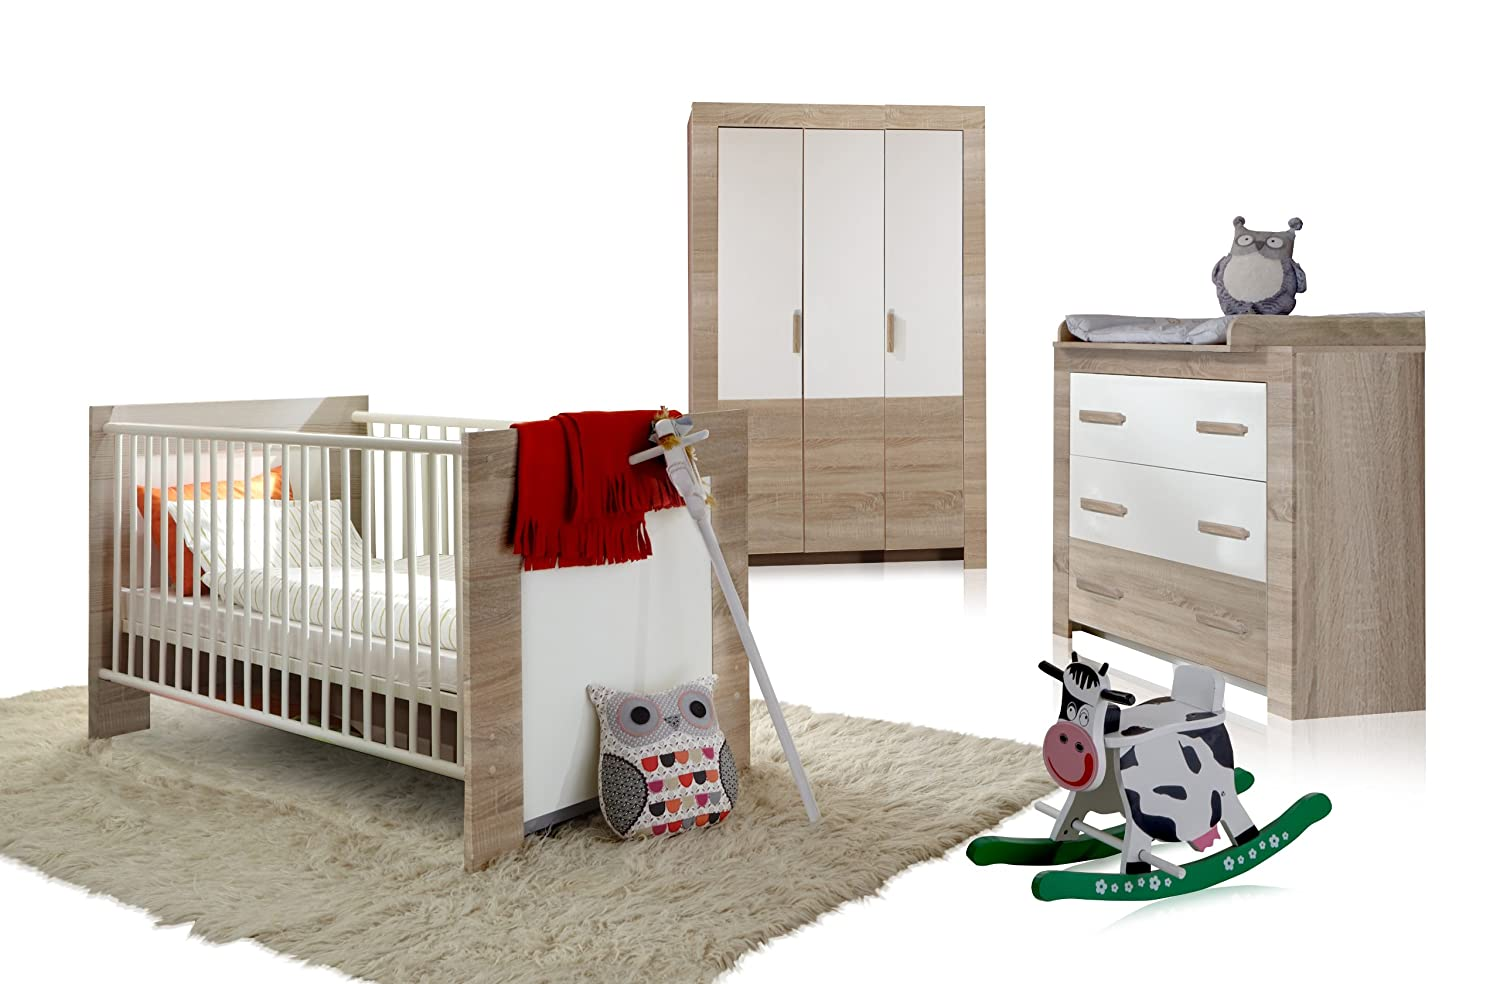 babybett eiche sgerau babyzimmer carlotta kinderbett auf rollen eiche sgerau hell with babybett. Black Bedroom Furniture Sets. Home Design Ideas